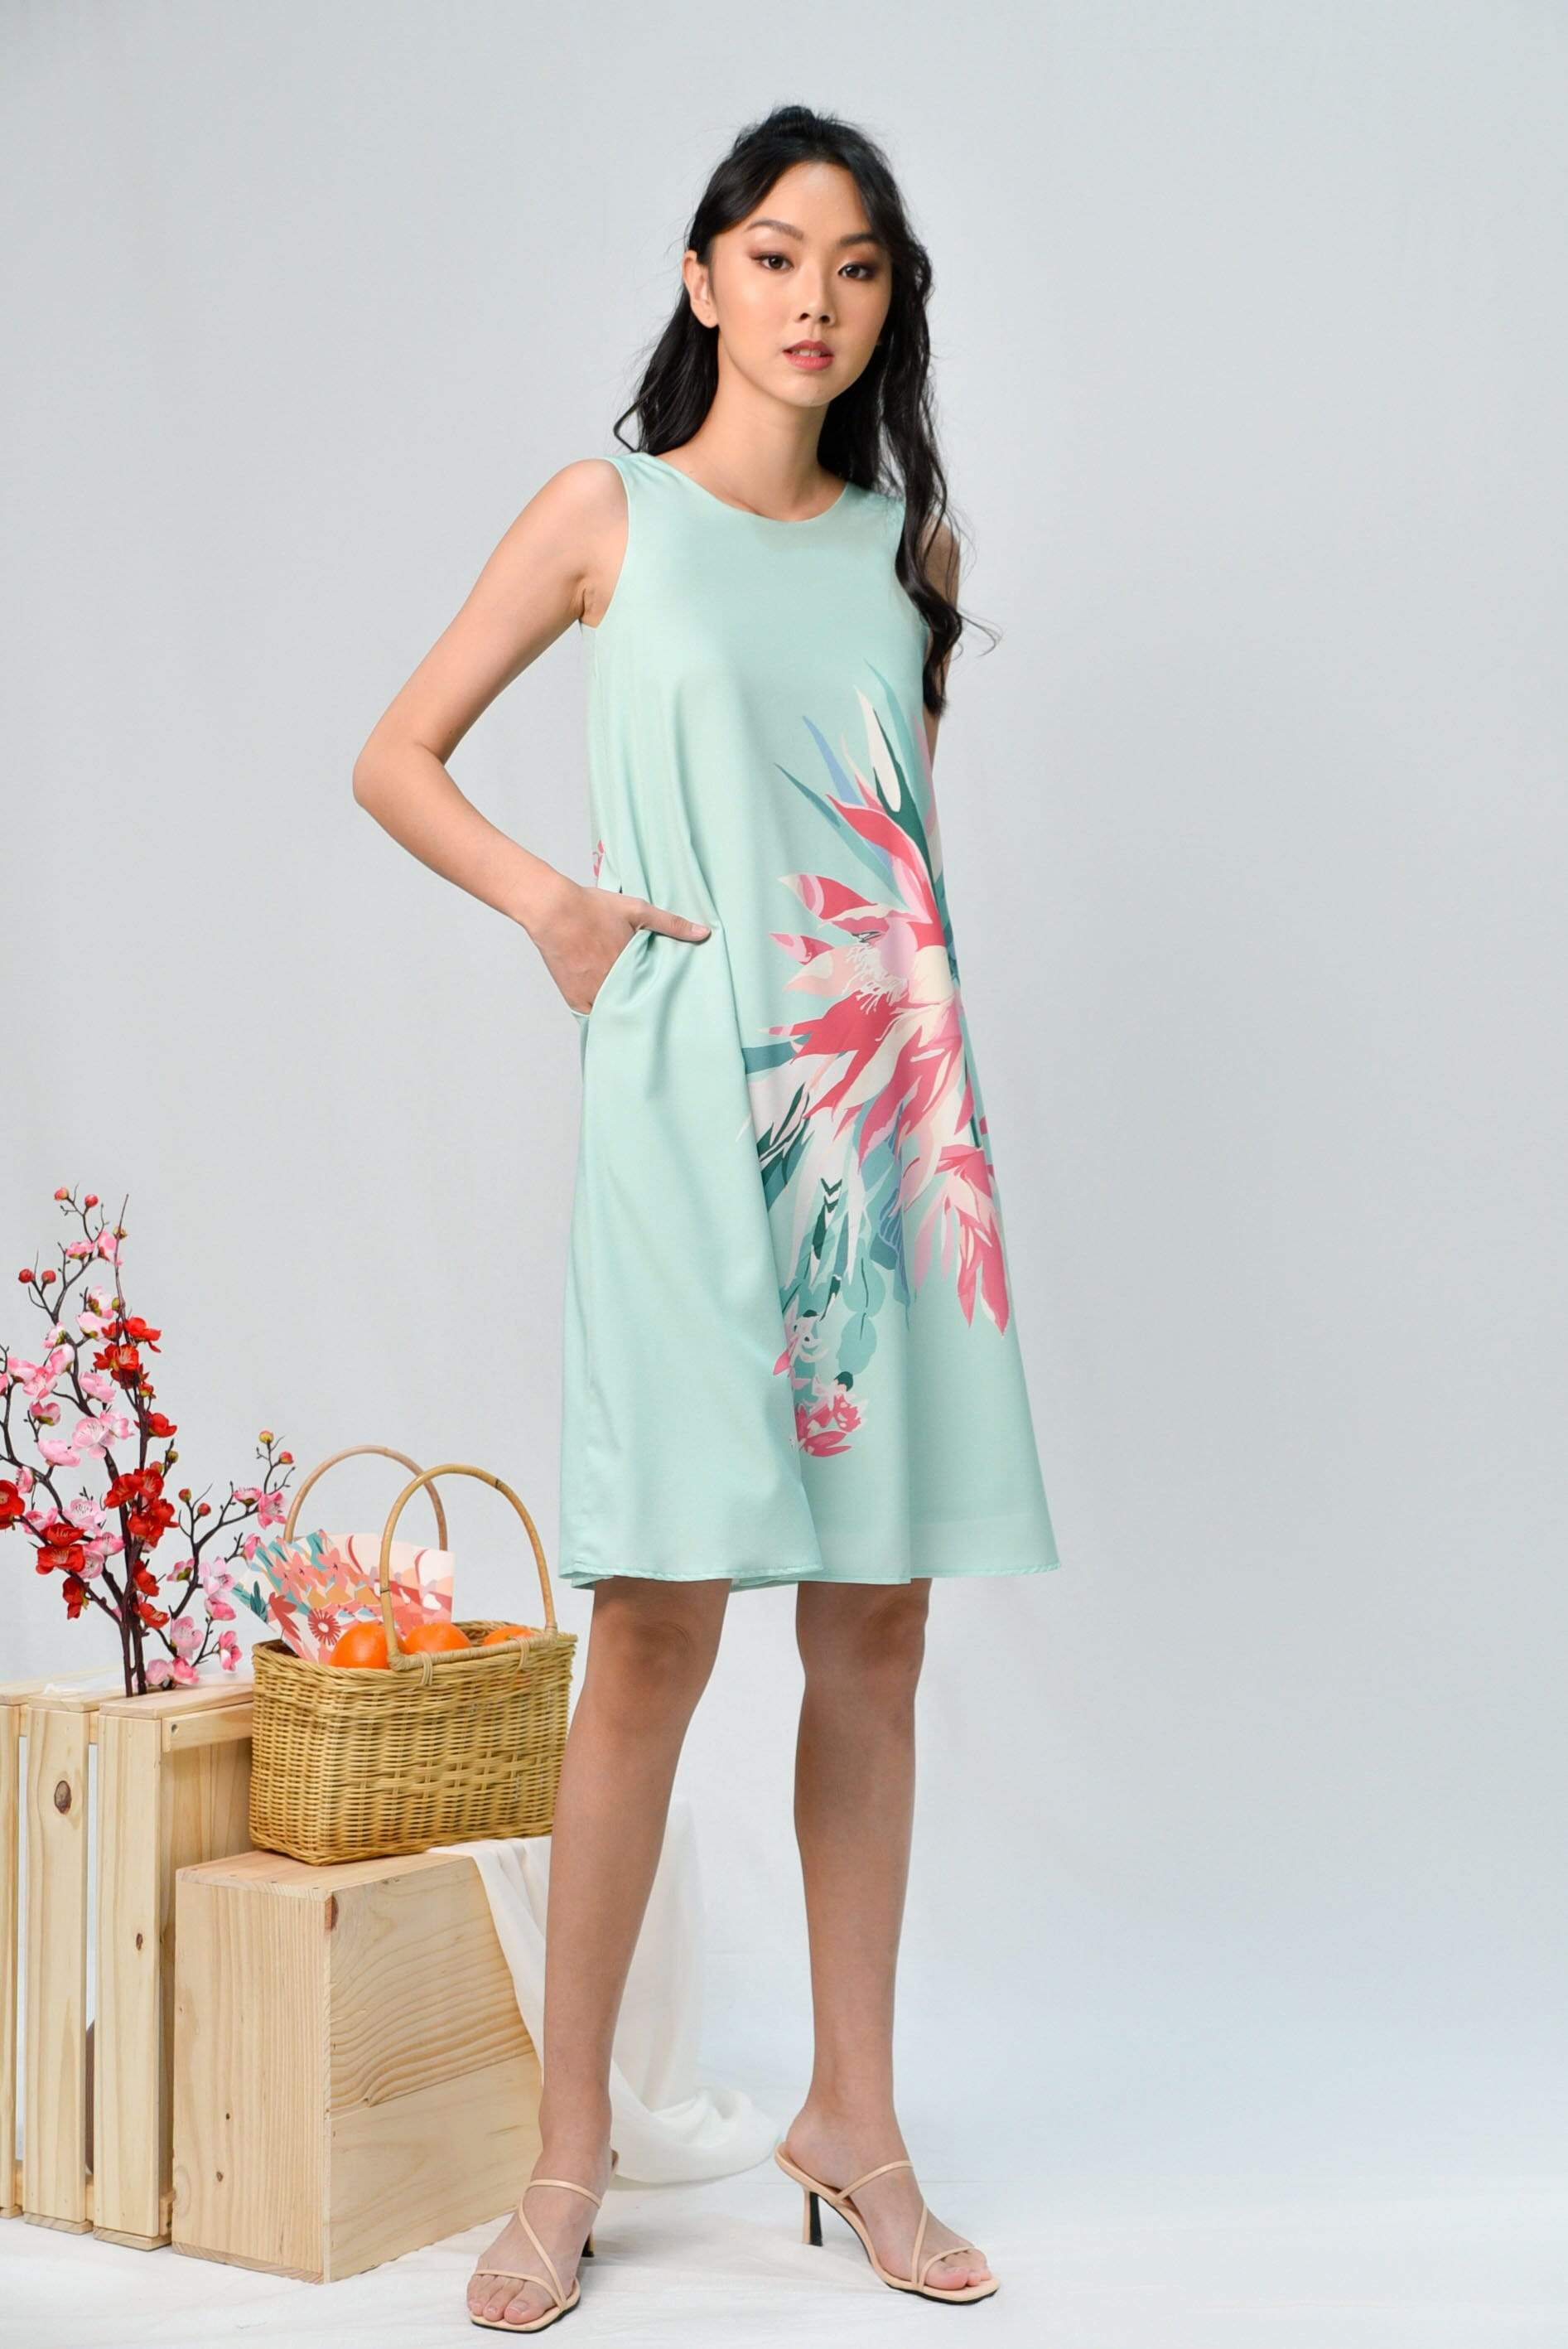 SPRING TWO-WAY A-LINE DRESS IN FRESH MINT